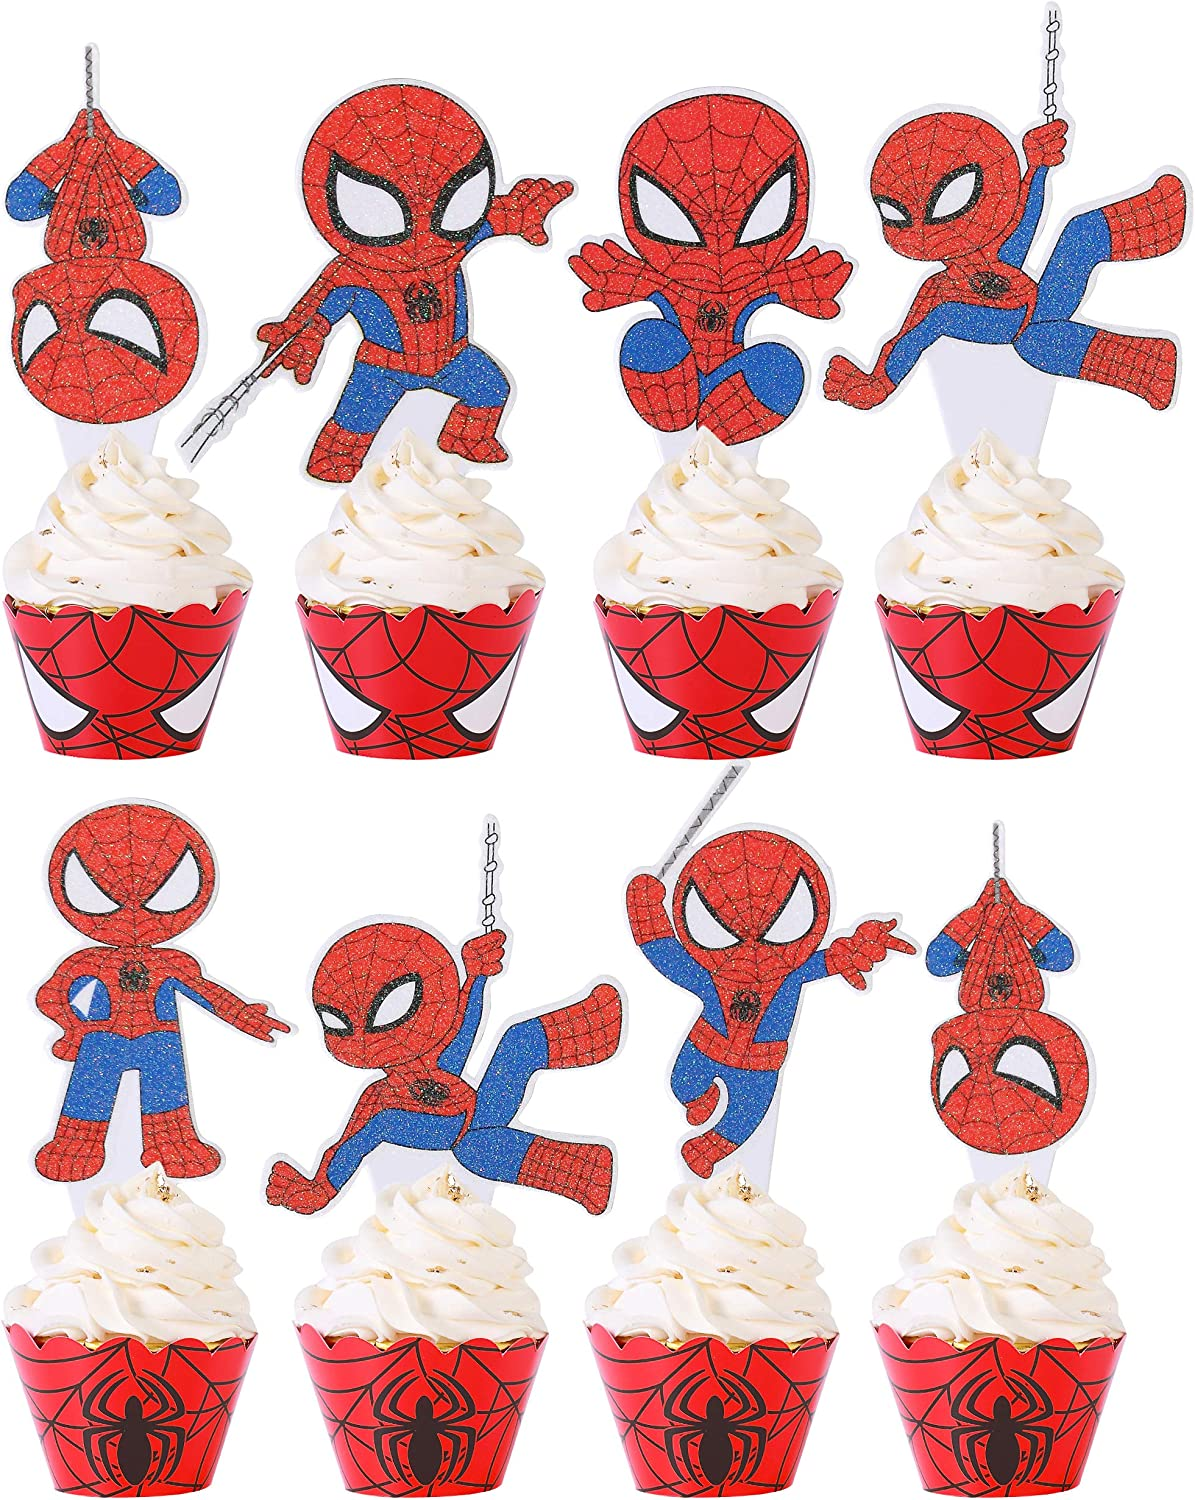 Spider Superhero Cupcake Cake Toppers(30pcs) and Wrappers(30pcs)Baby Shower Kids Birthday Party Supplies Decorations Glitter Cupcake Topper Food Picks for Super Hero Superman Theme Party